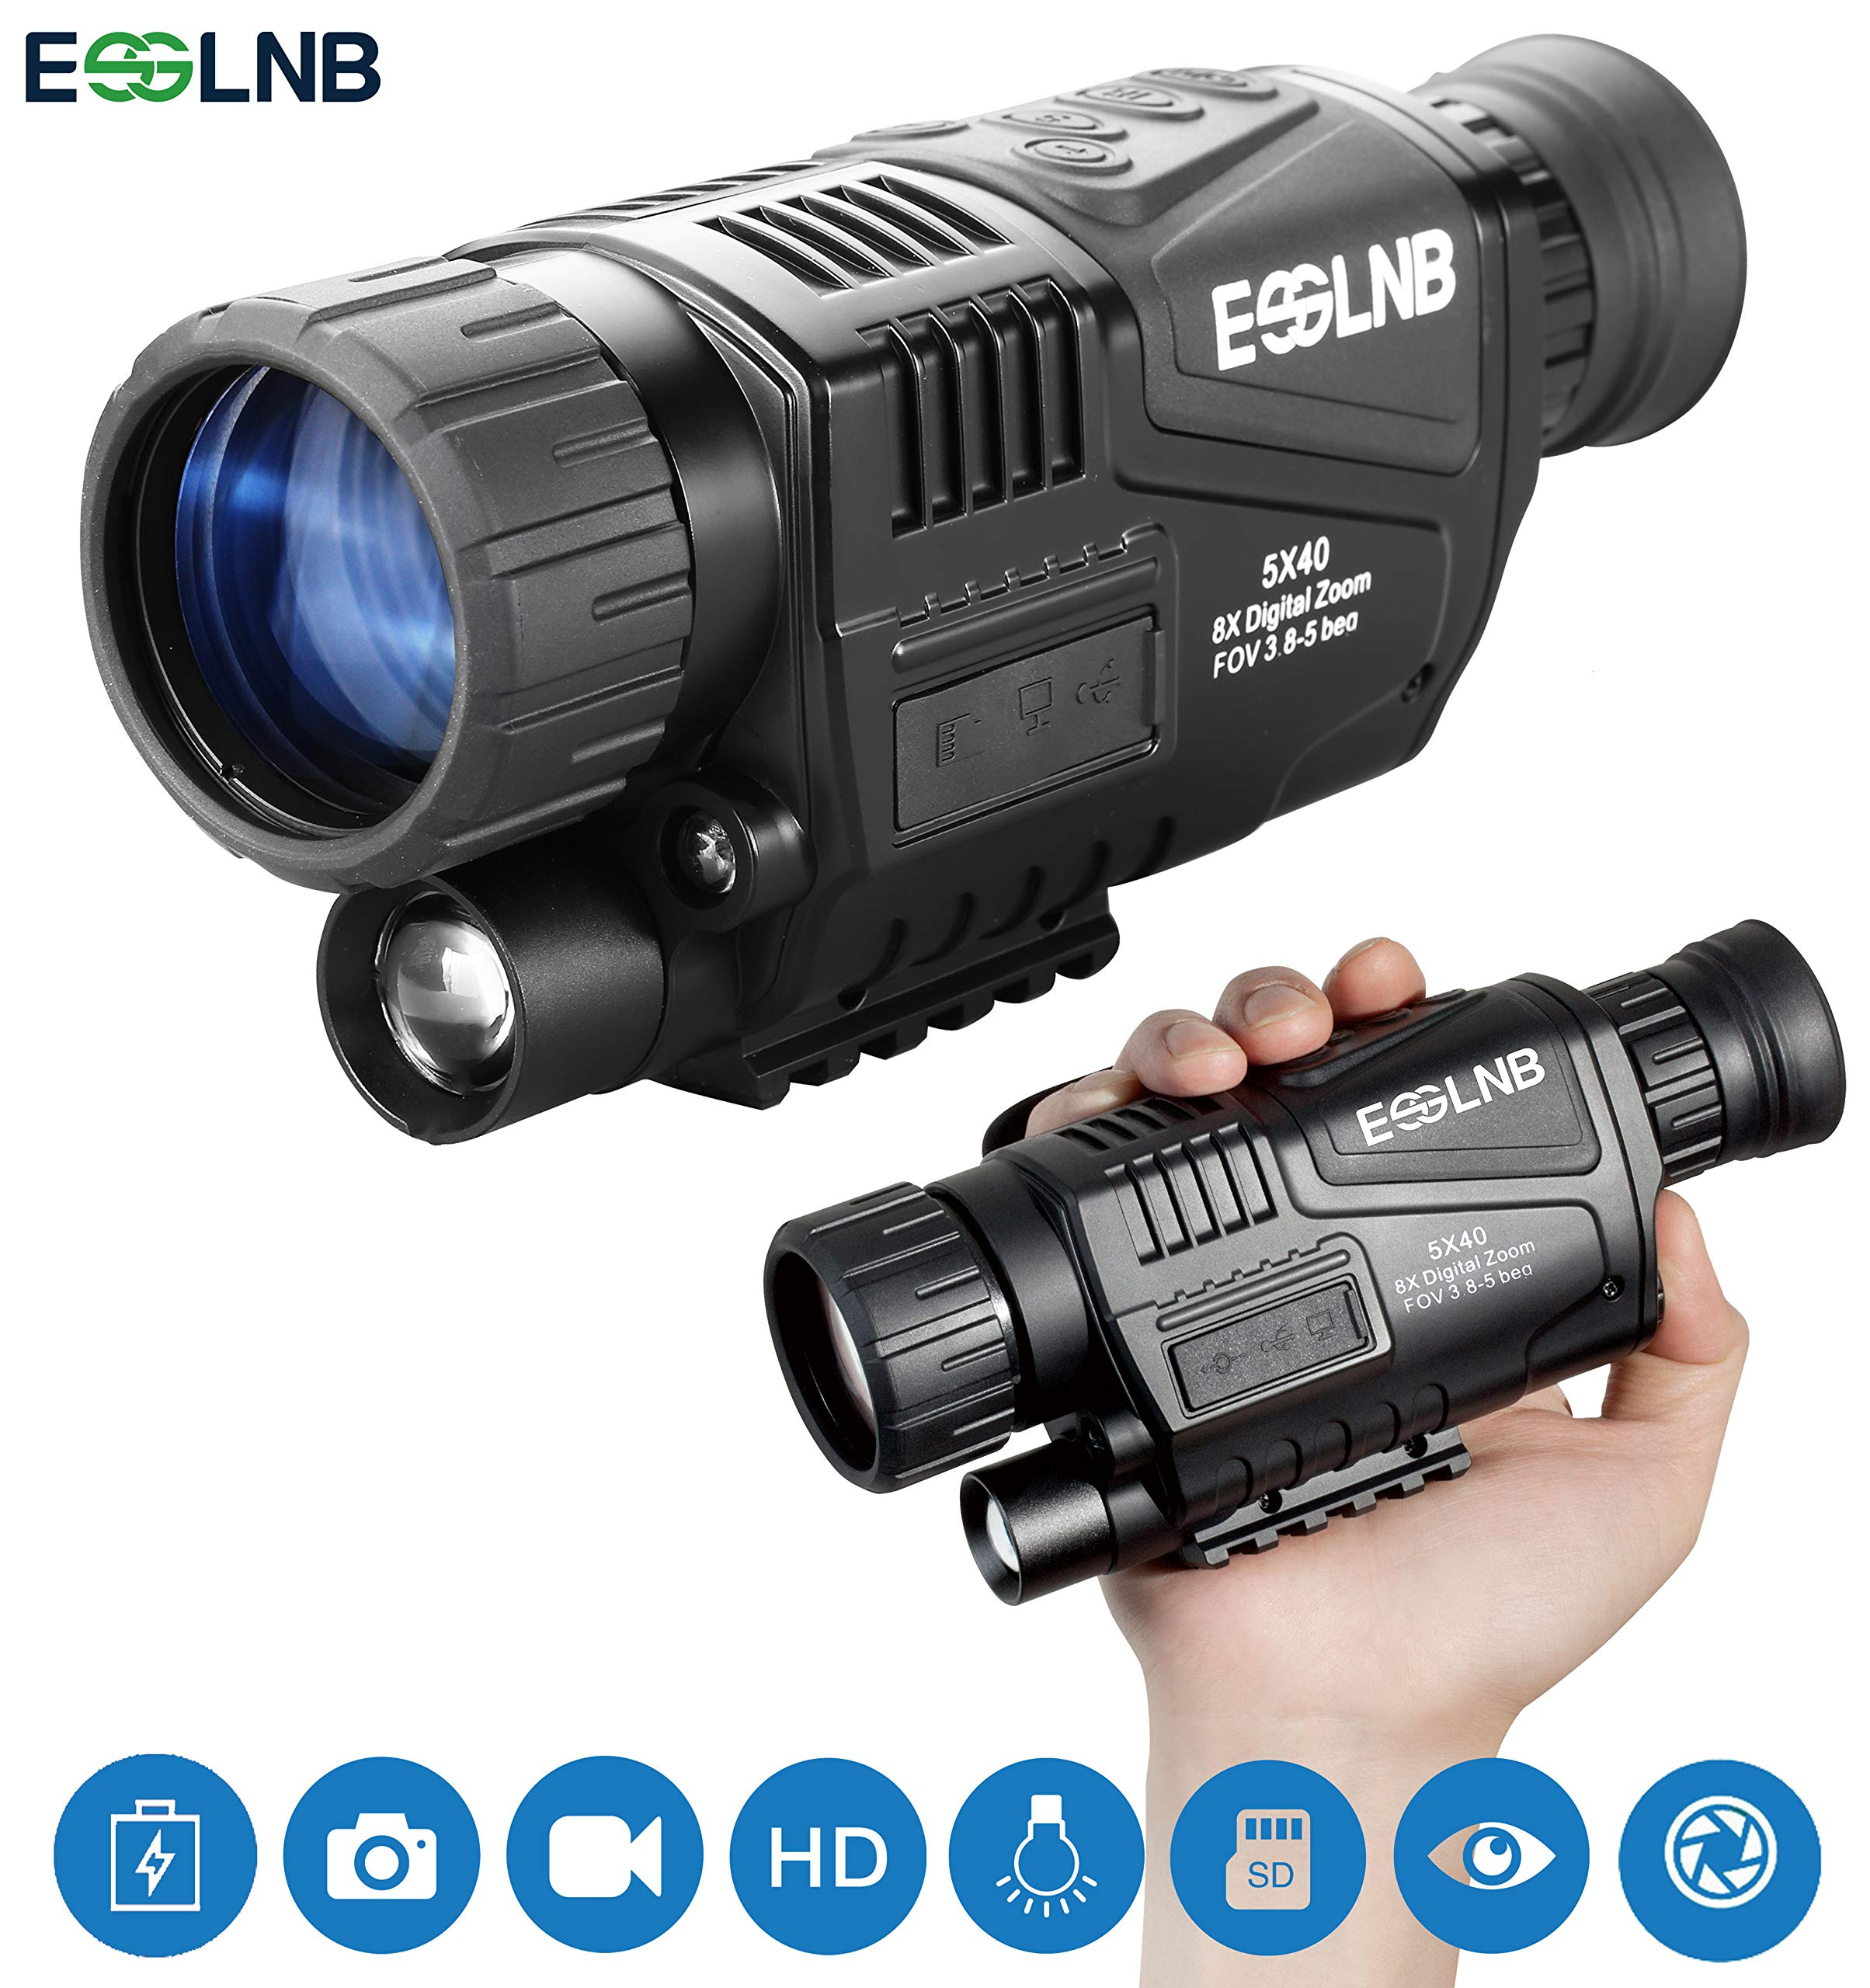 ESSLNB Night Vision Monocular 5X40 Night Vision Infrared IR Camera HD Digital Night Vision Scopes with 1.5'' TFT LCD Take Photos and Video Playback Function and TF Card for Hunting Security Surveilla by ESSLNB